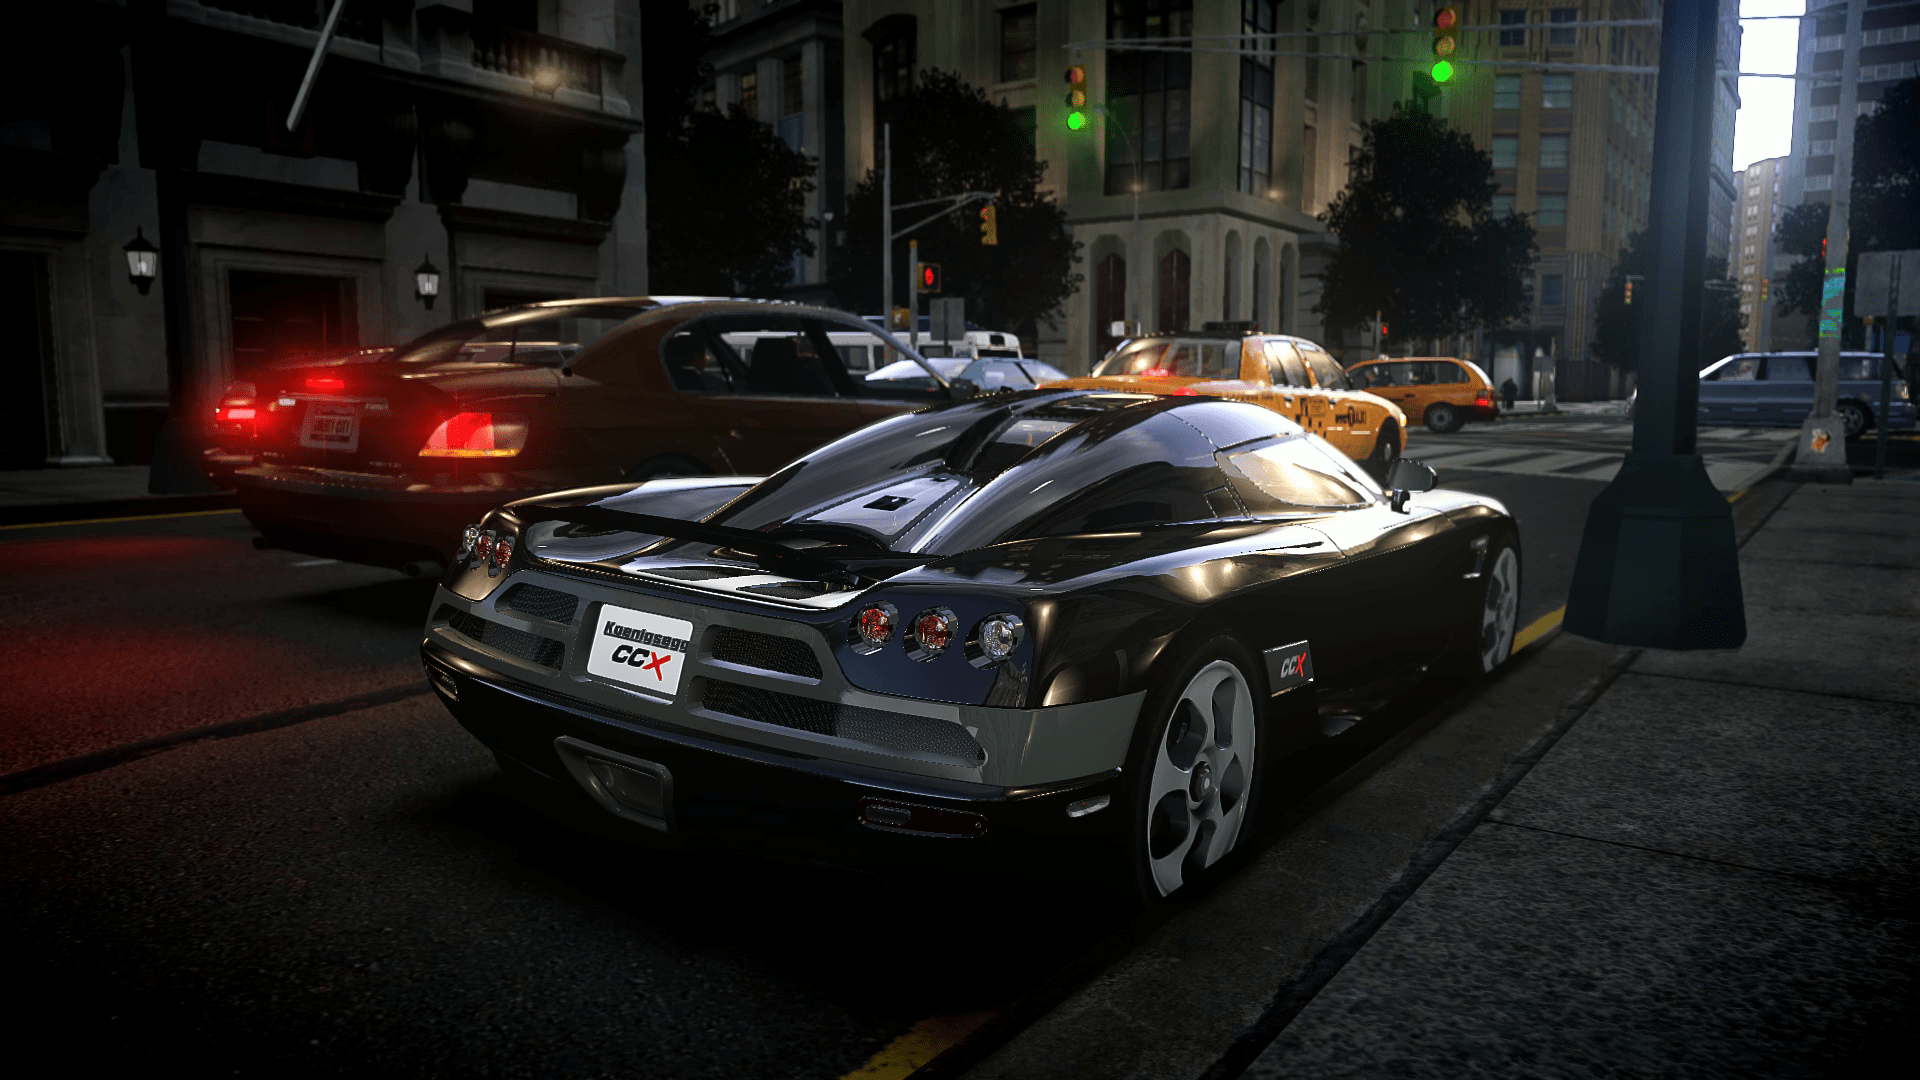 Gta 5 Cars Wallpaper Download Gta Gaming Archive